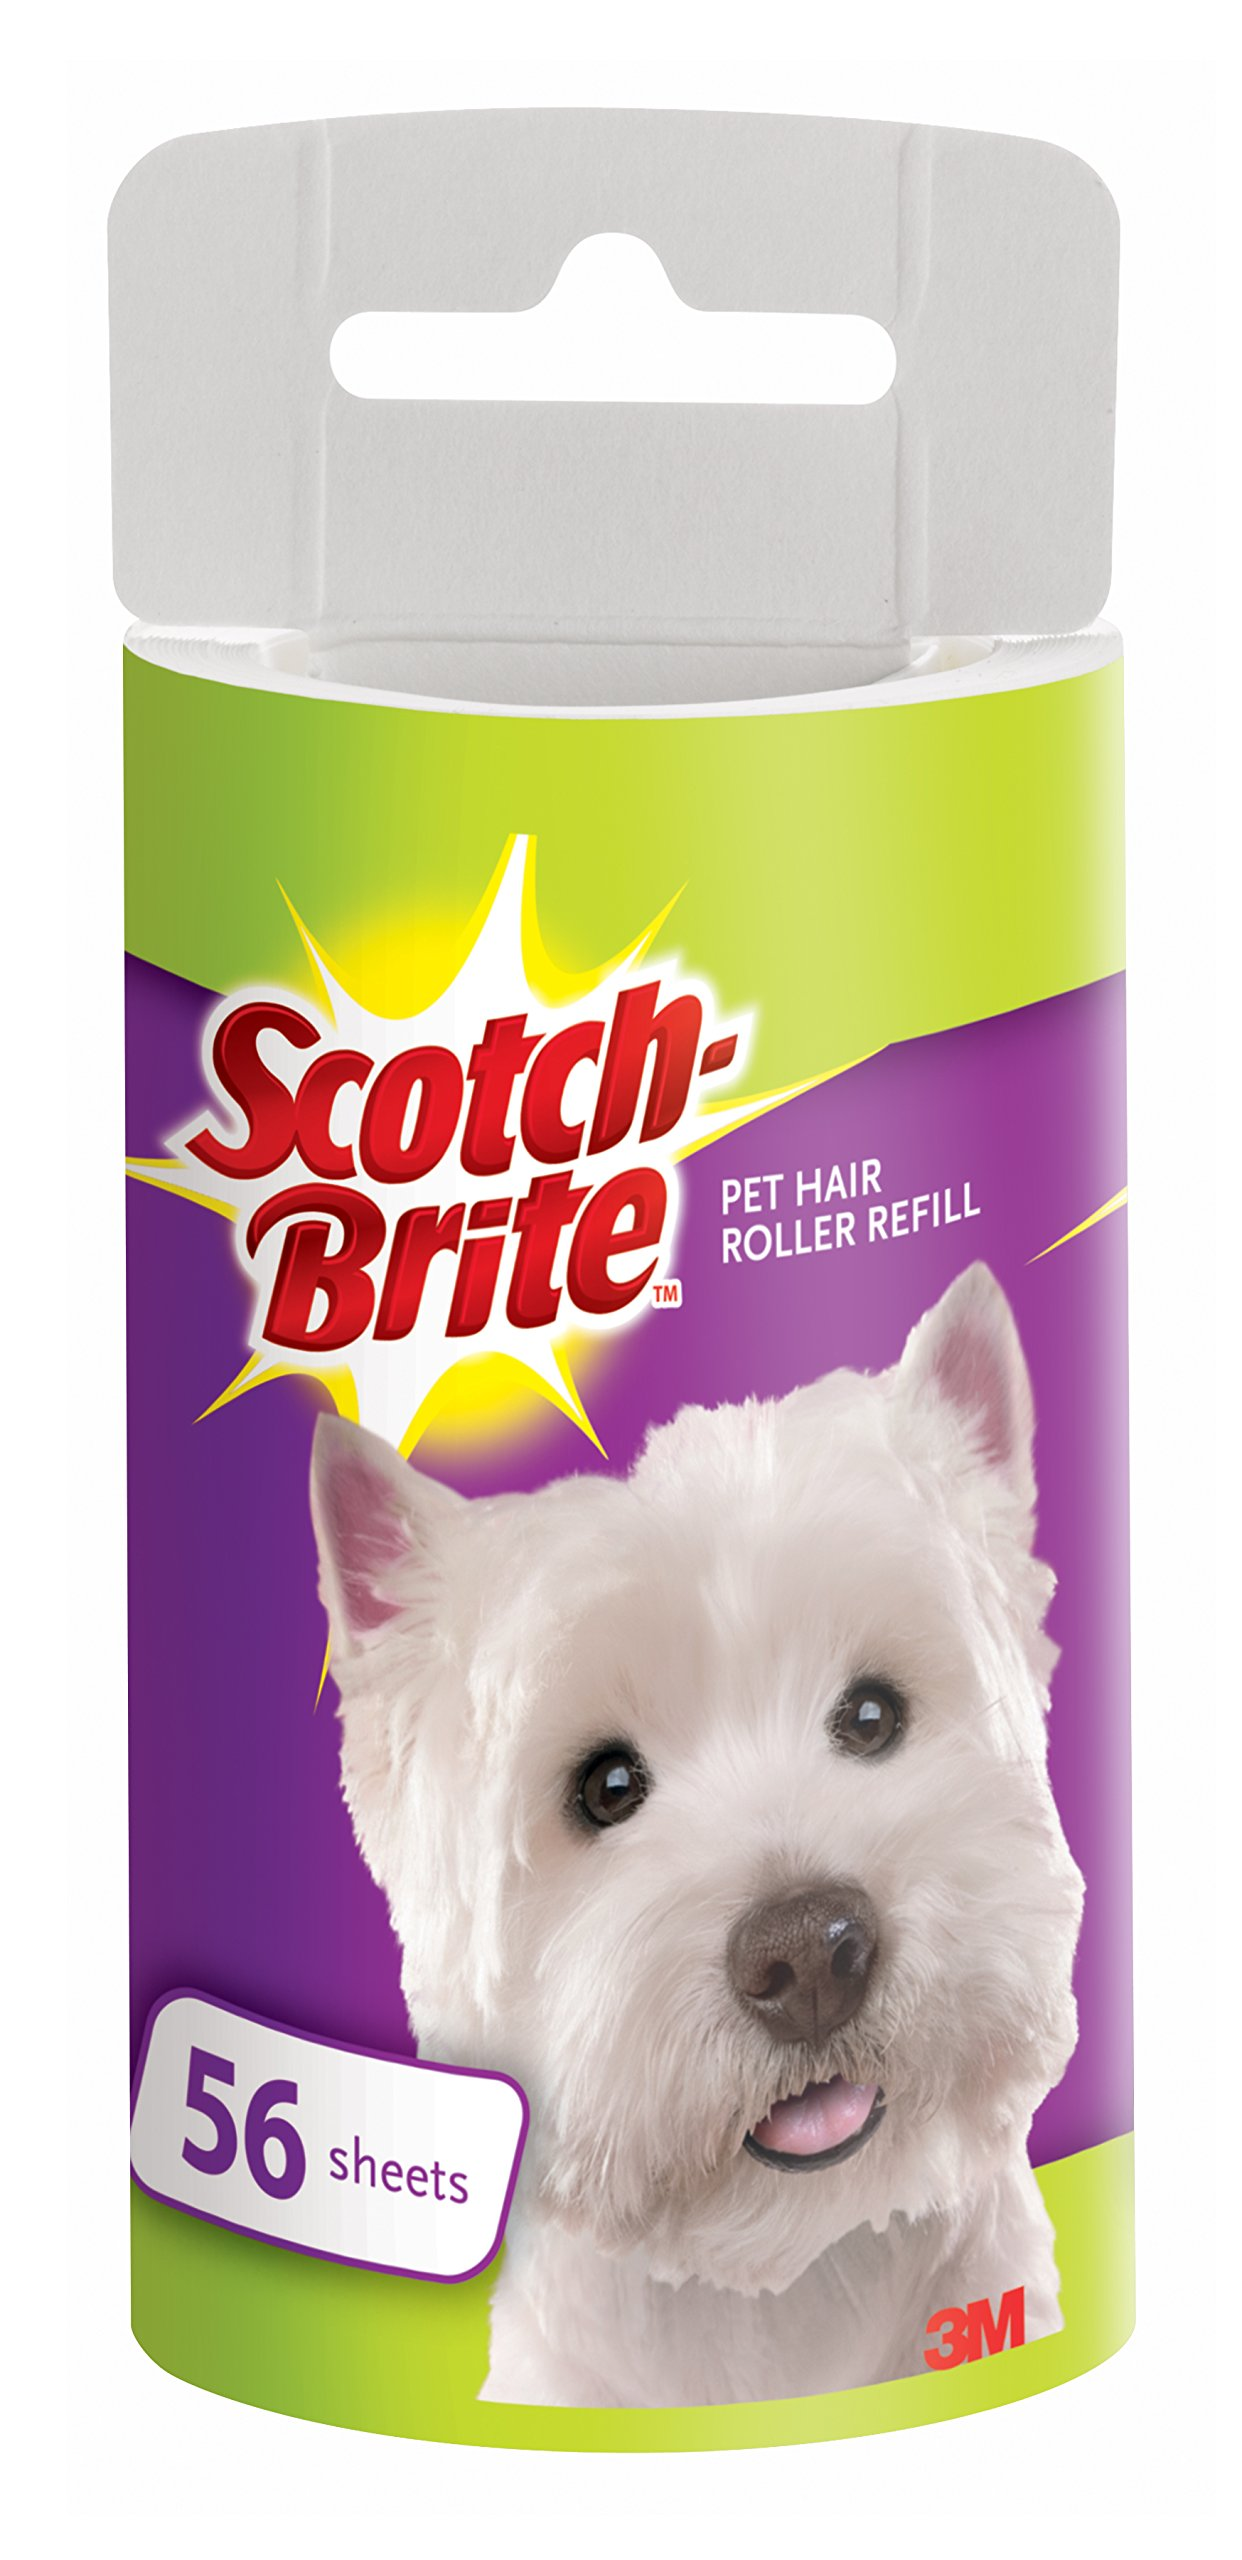 Scotch-Brite Pet Hair Roller Refill, 56-Sheets/Roller, 12 Rollers/Pack (672 Sheets Total)